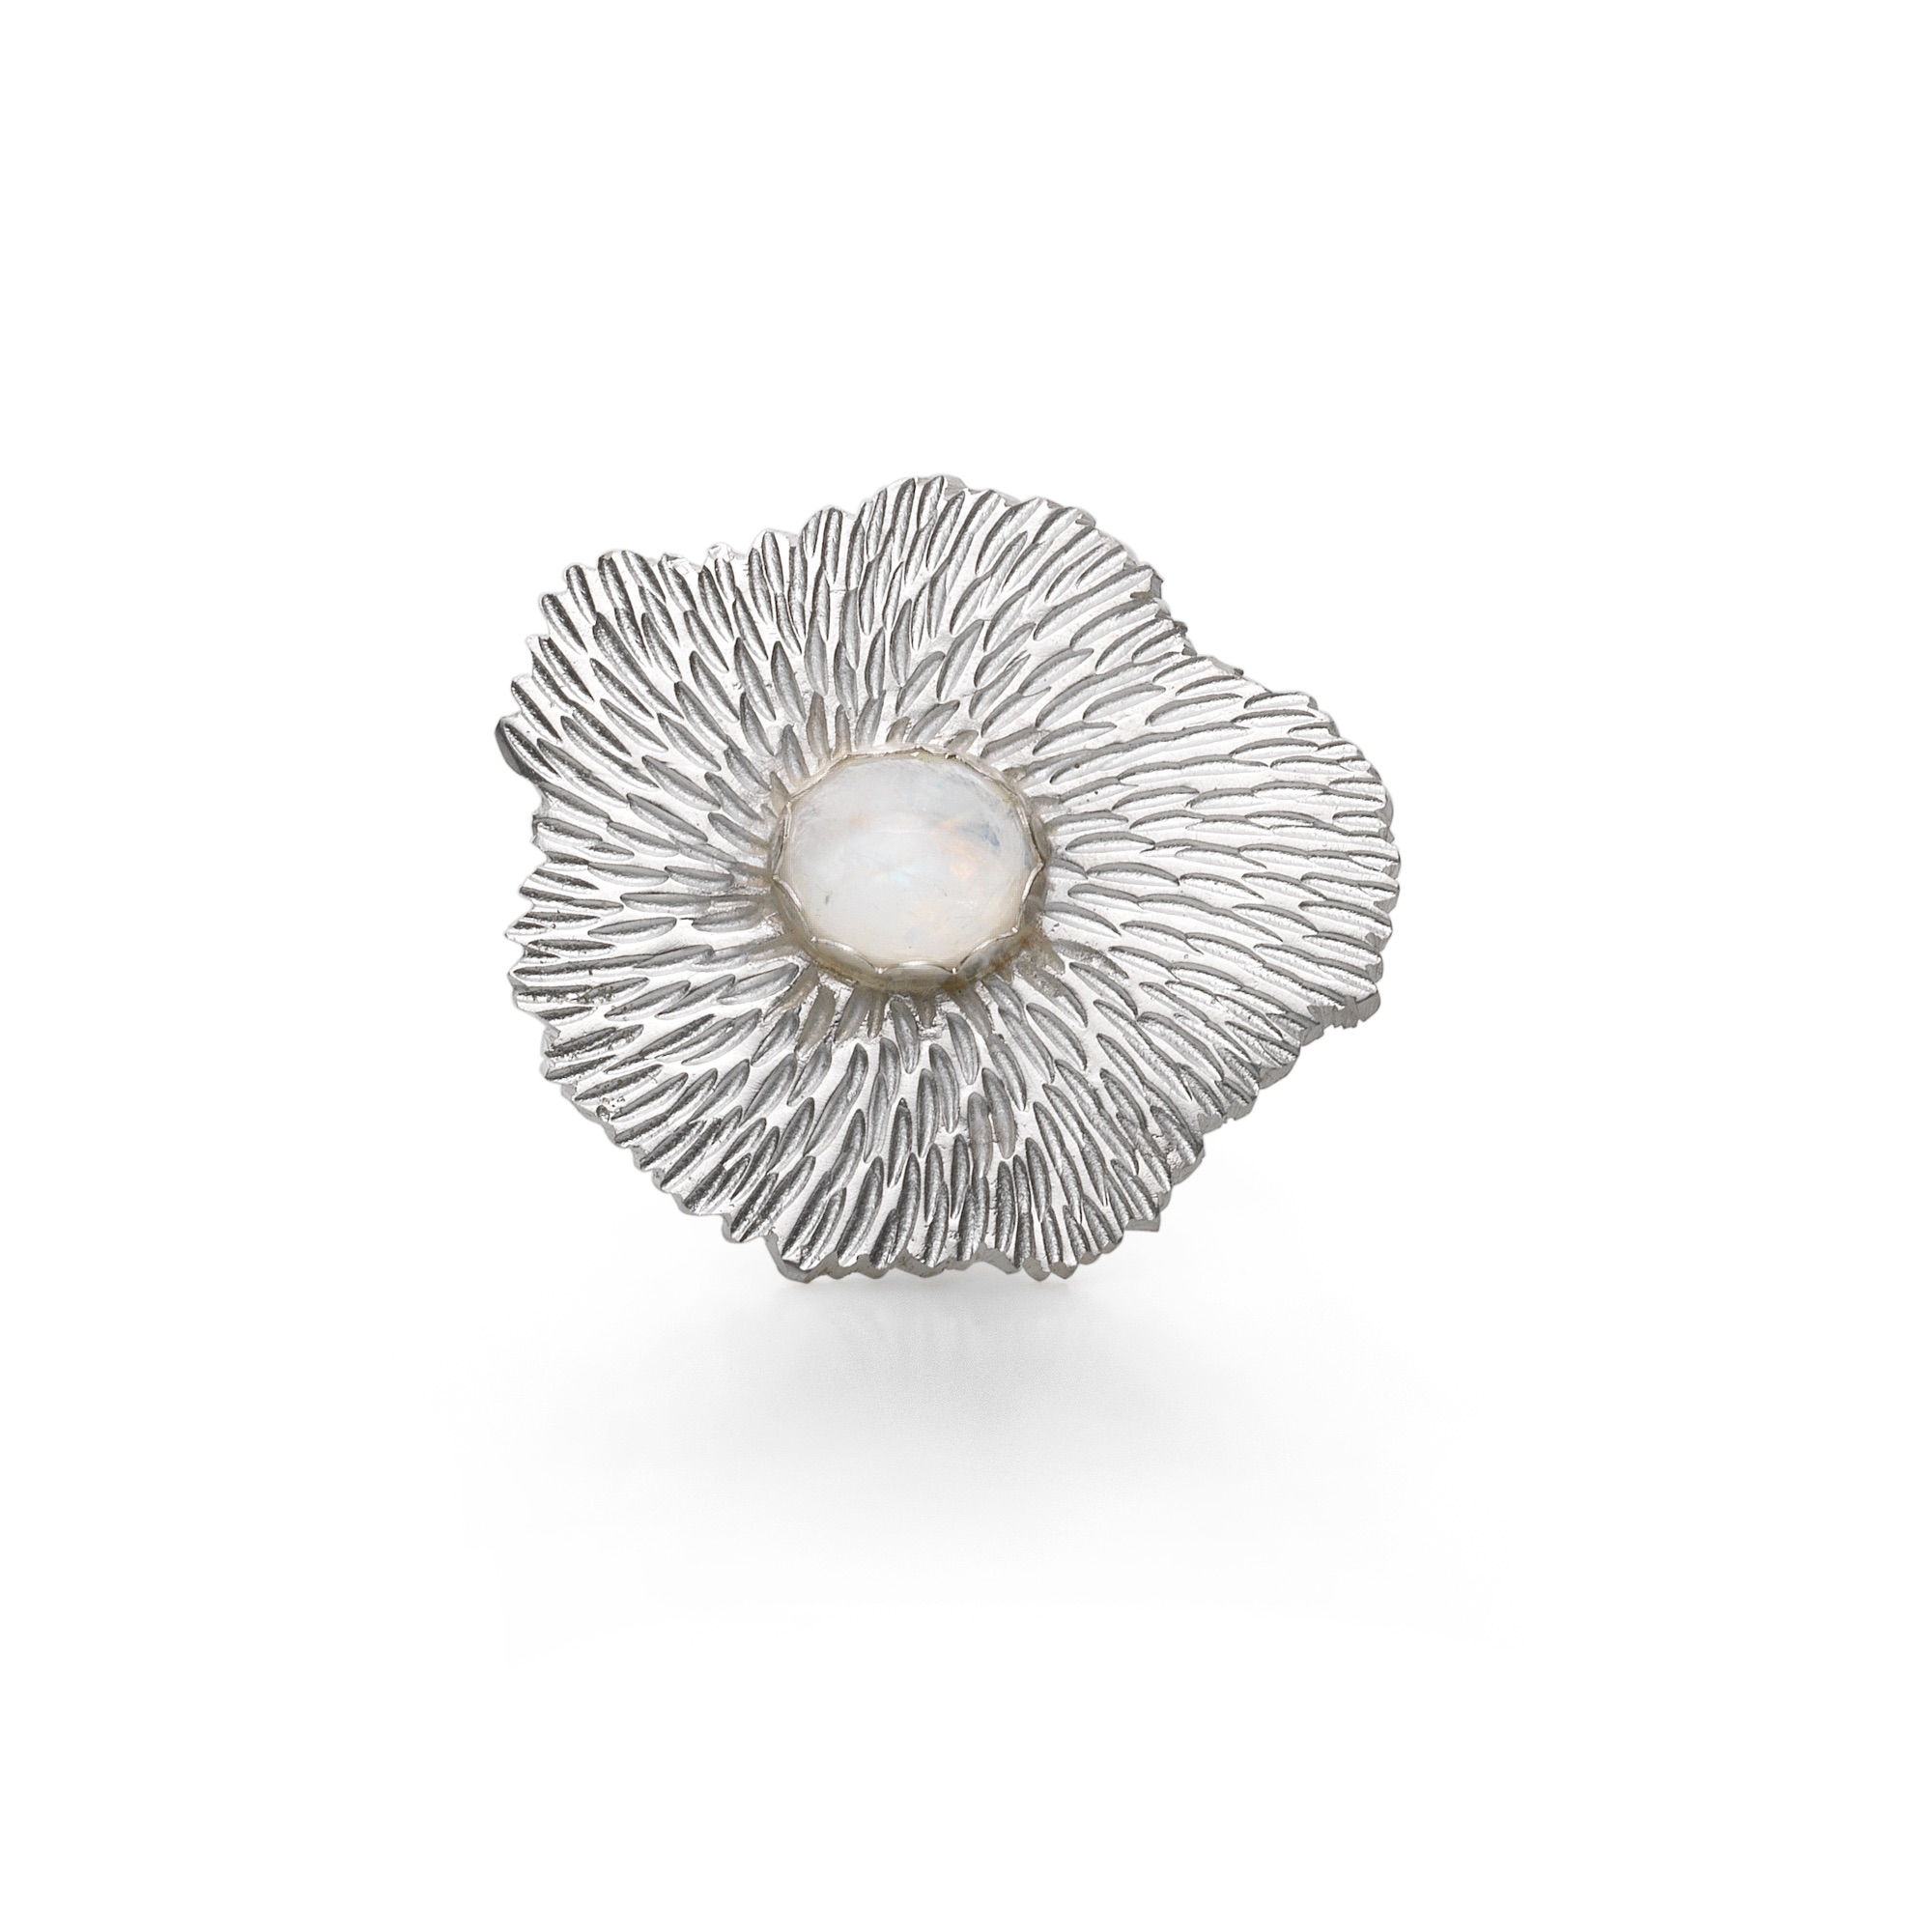 cathy-newell-price-dahlia-brooch-72dpi